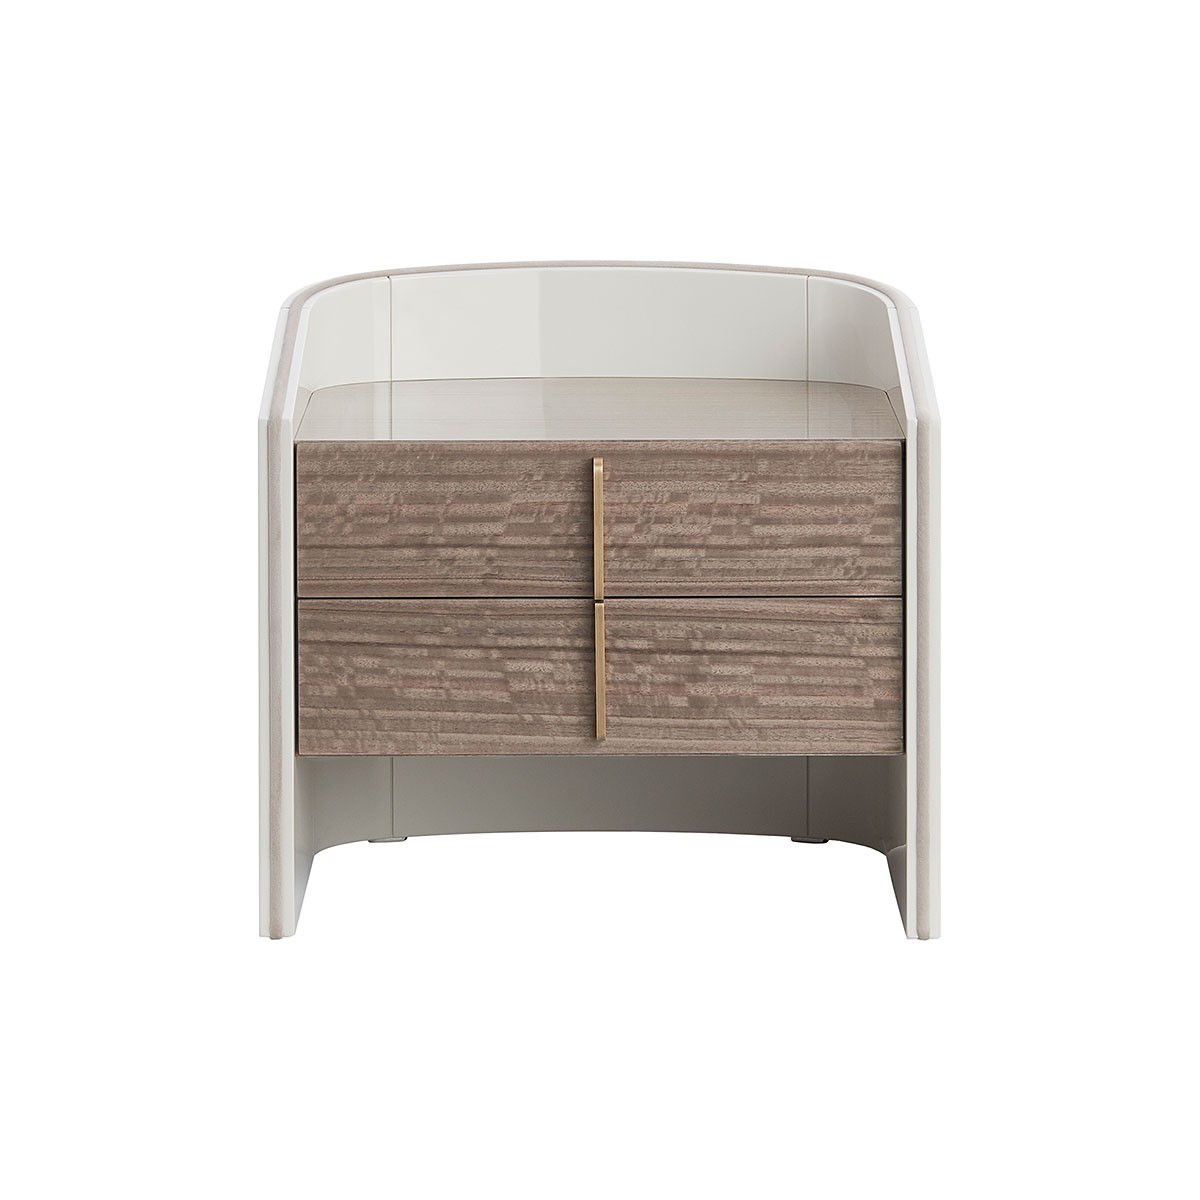 The Adaline Bedside Table